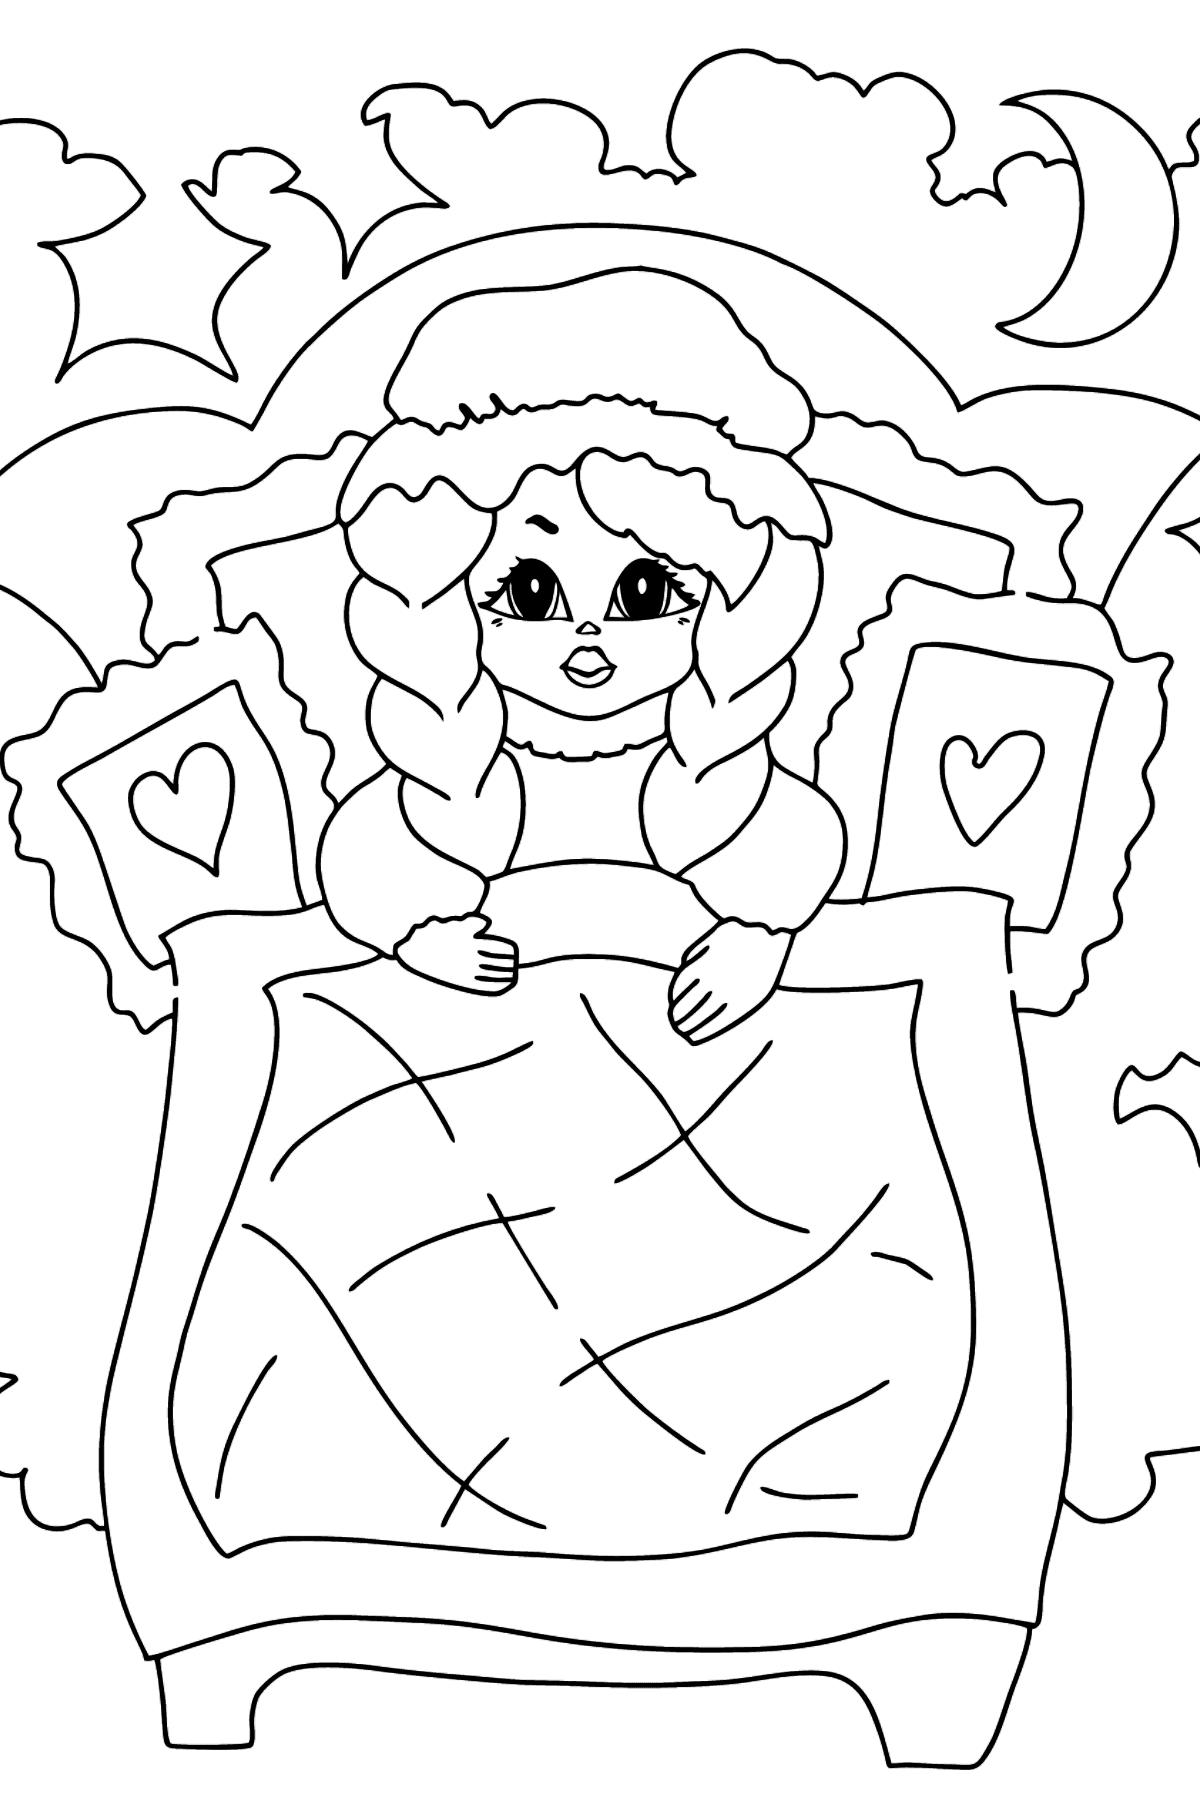 Coloring Page - A Princess in Bed - Coloring Pages for Kids